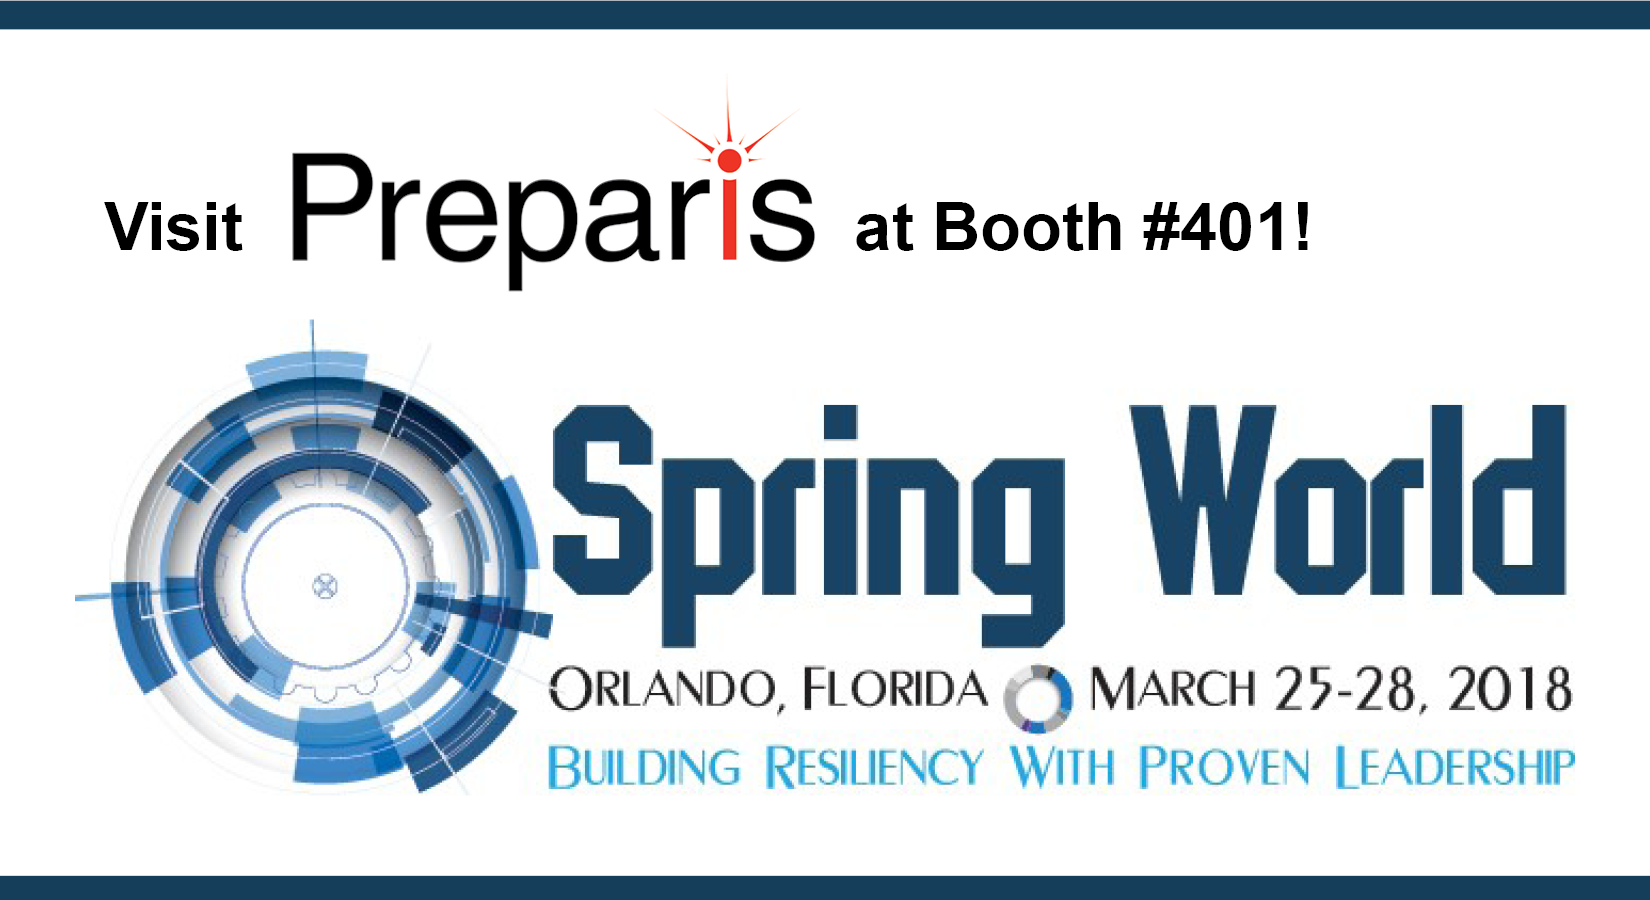 Preparis Plans to Attend DRJ Spring World in Orlando, FL